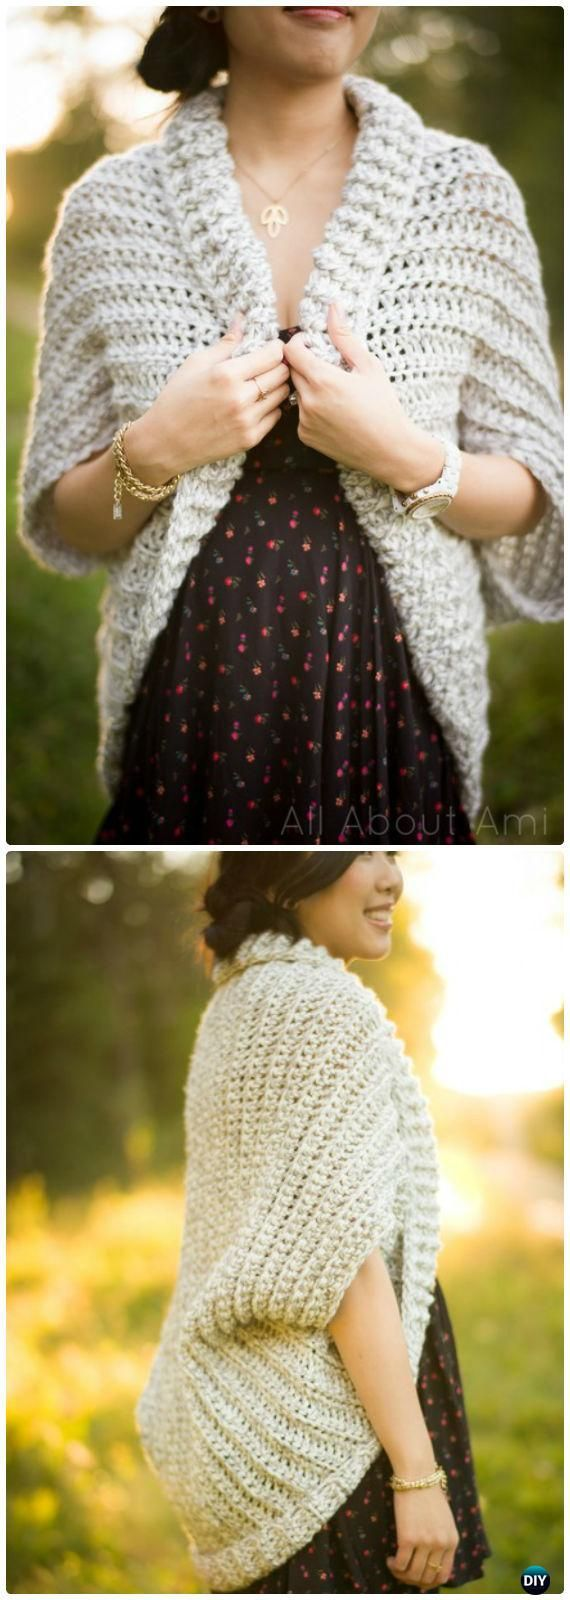 Crochet Easy Chunky Crochet Sweater Free Pattern - Crochet Women Sweater Coat-Cardigan Free Patterns